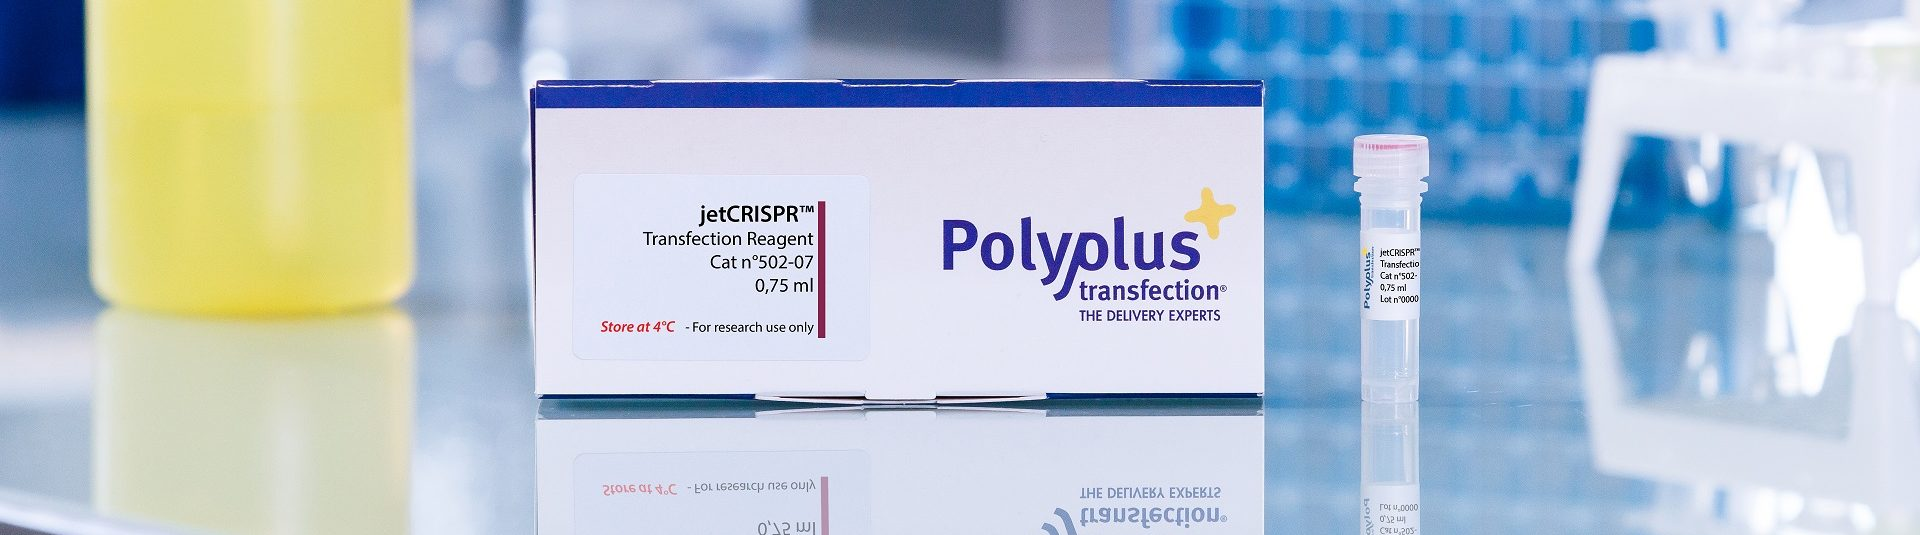 jetCRISPR packaging - Polyplus-transfection